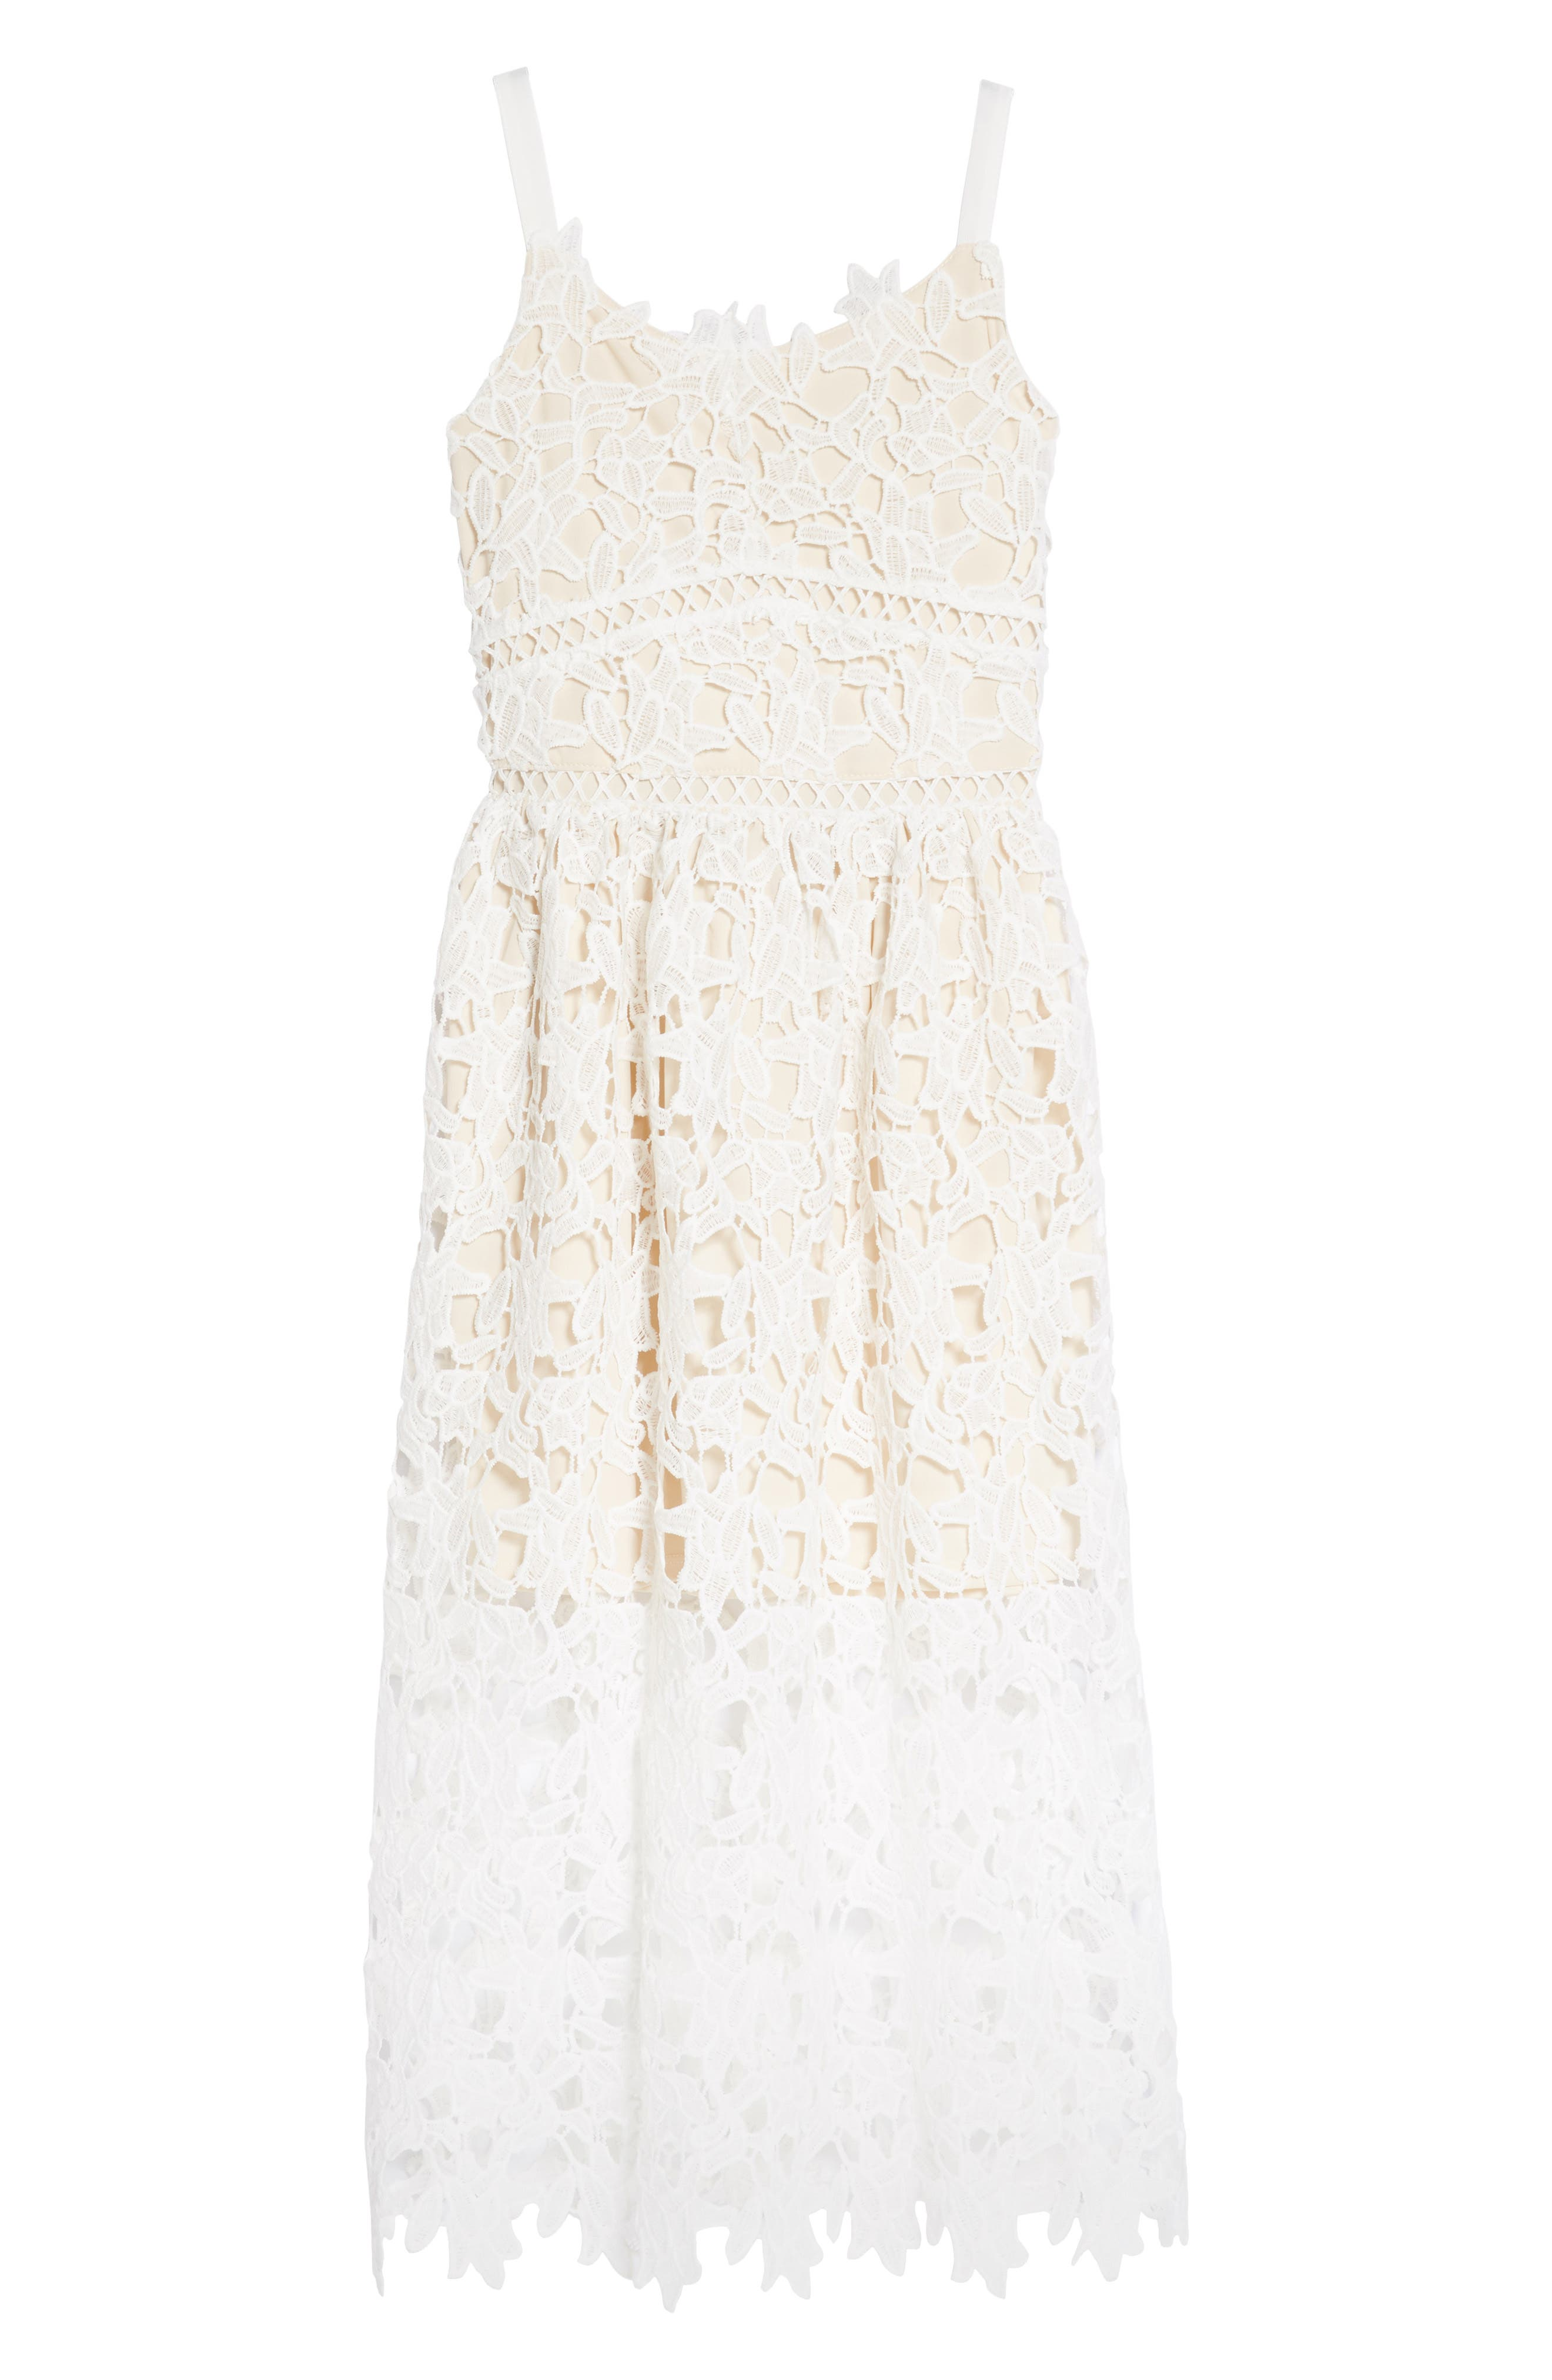 Alternate Image 1 Selected - Trixxi Floral Lace Dress (Big Girls)